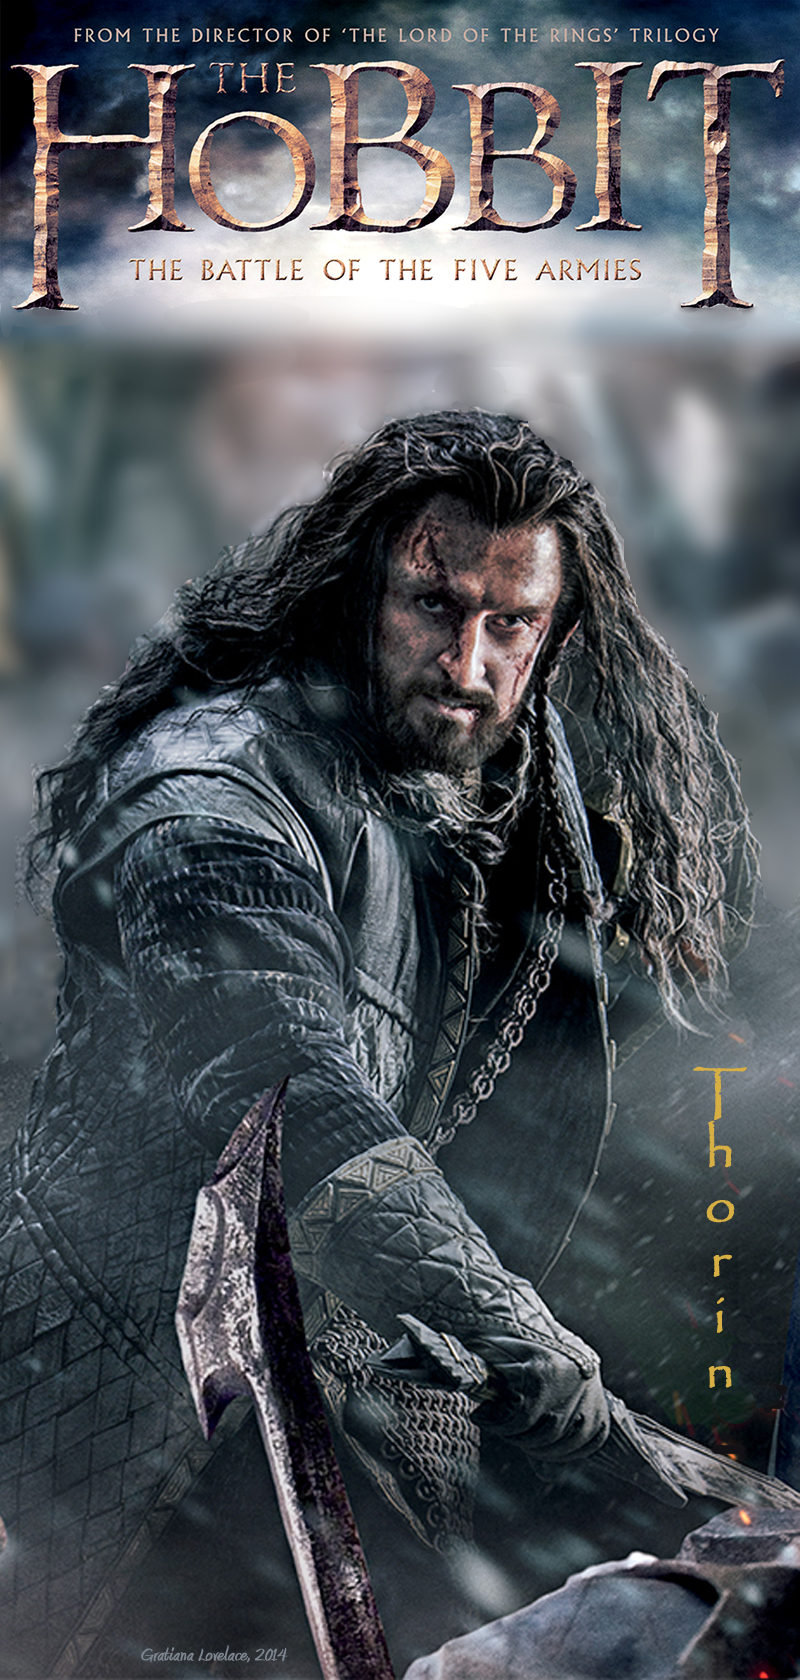 One Last Time: Following Richard Armitage as Thorin ...